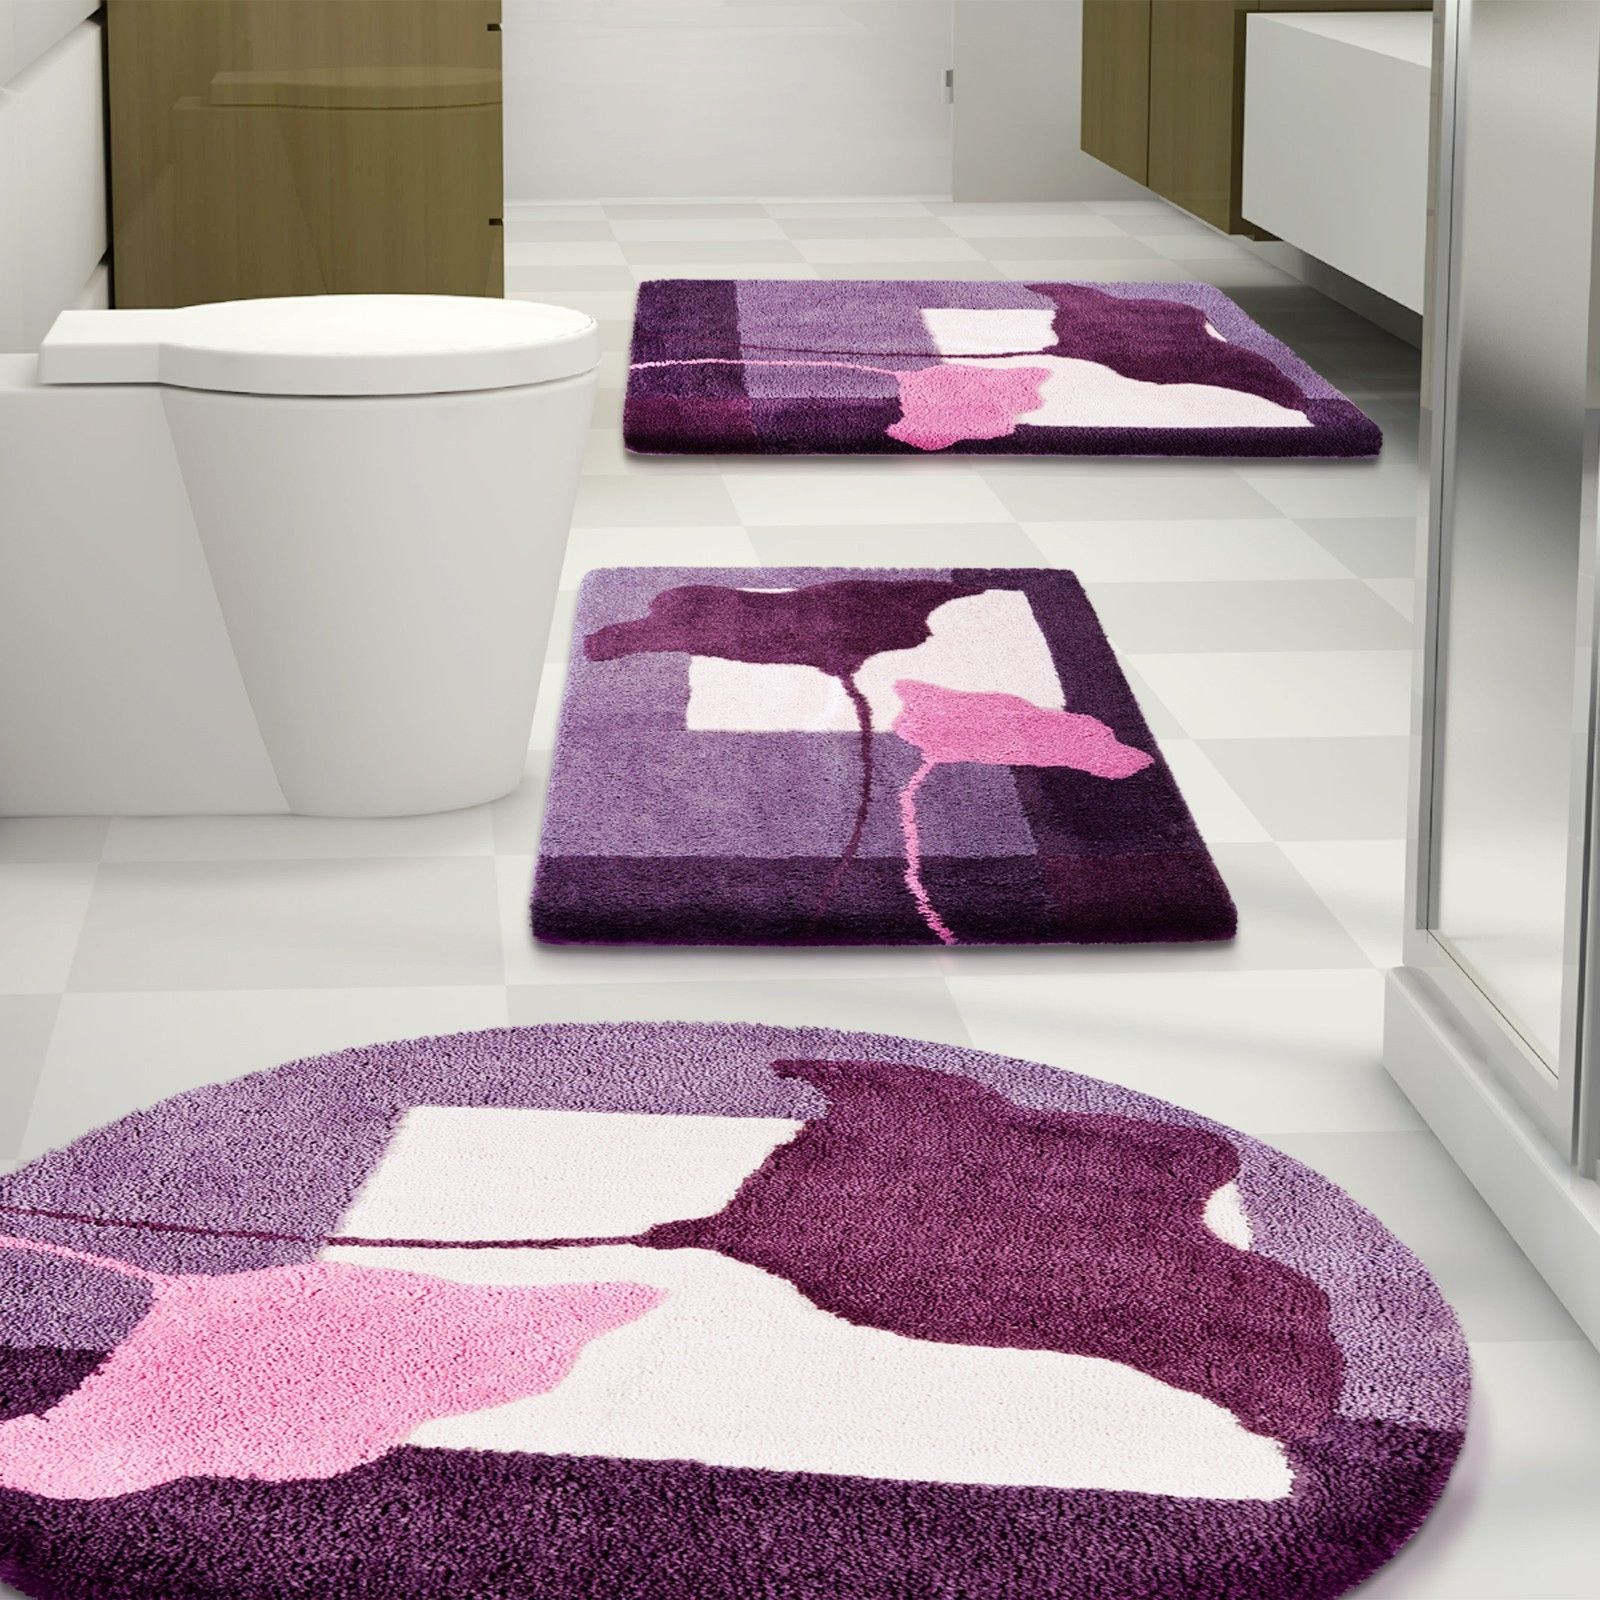 Beautiful Bathroom Rug Sets With Flower Purple And Pink Accent